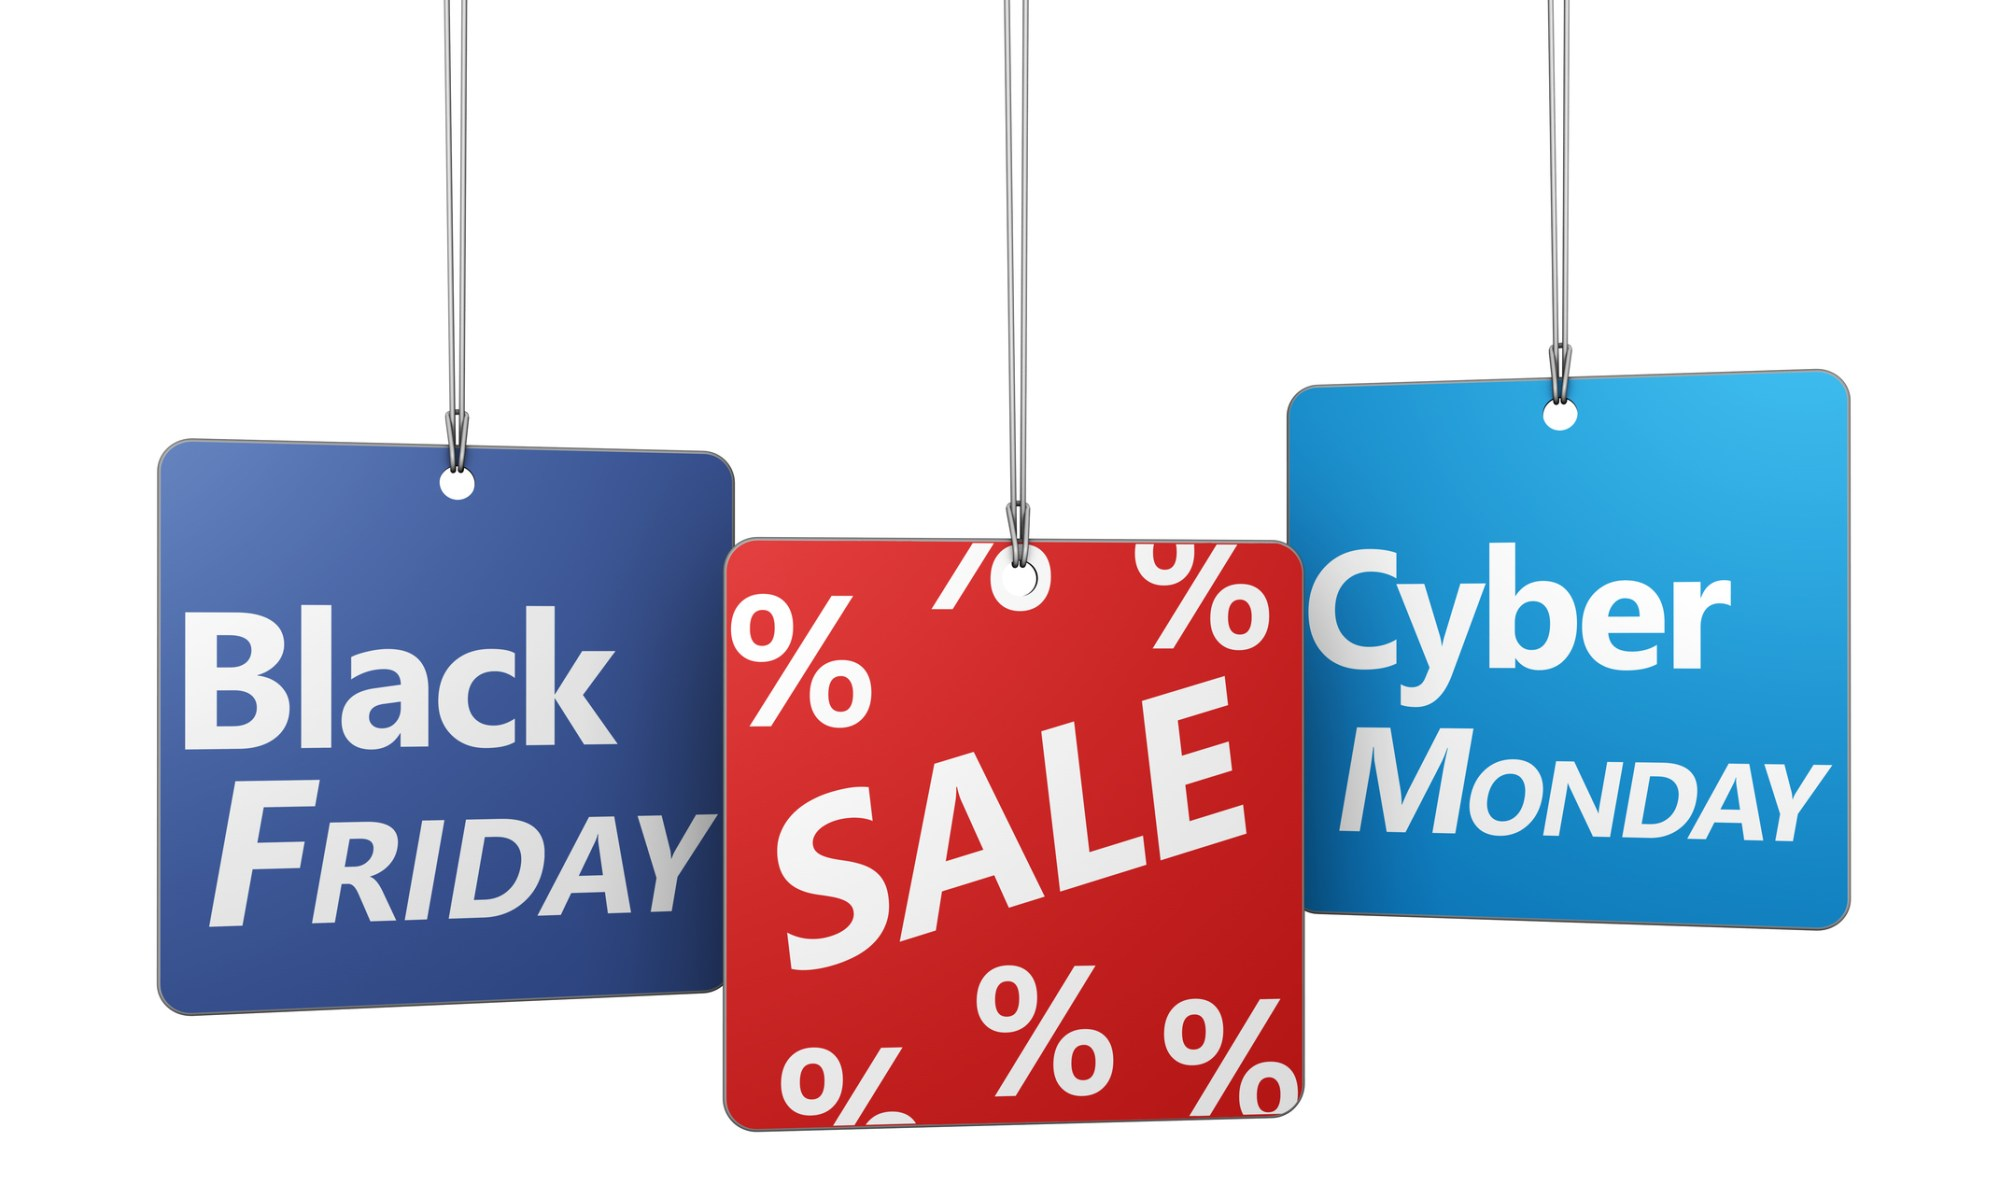 black friday sales for cyber monday 2018